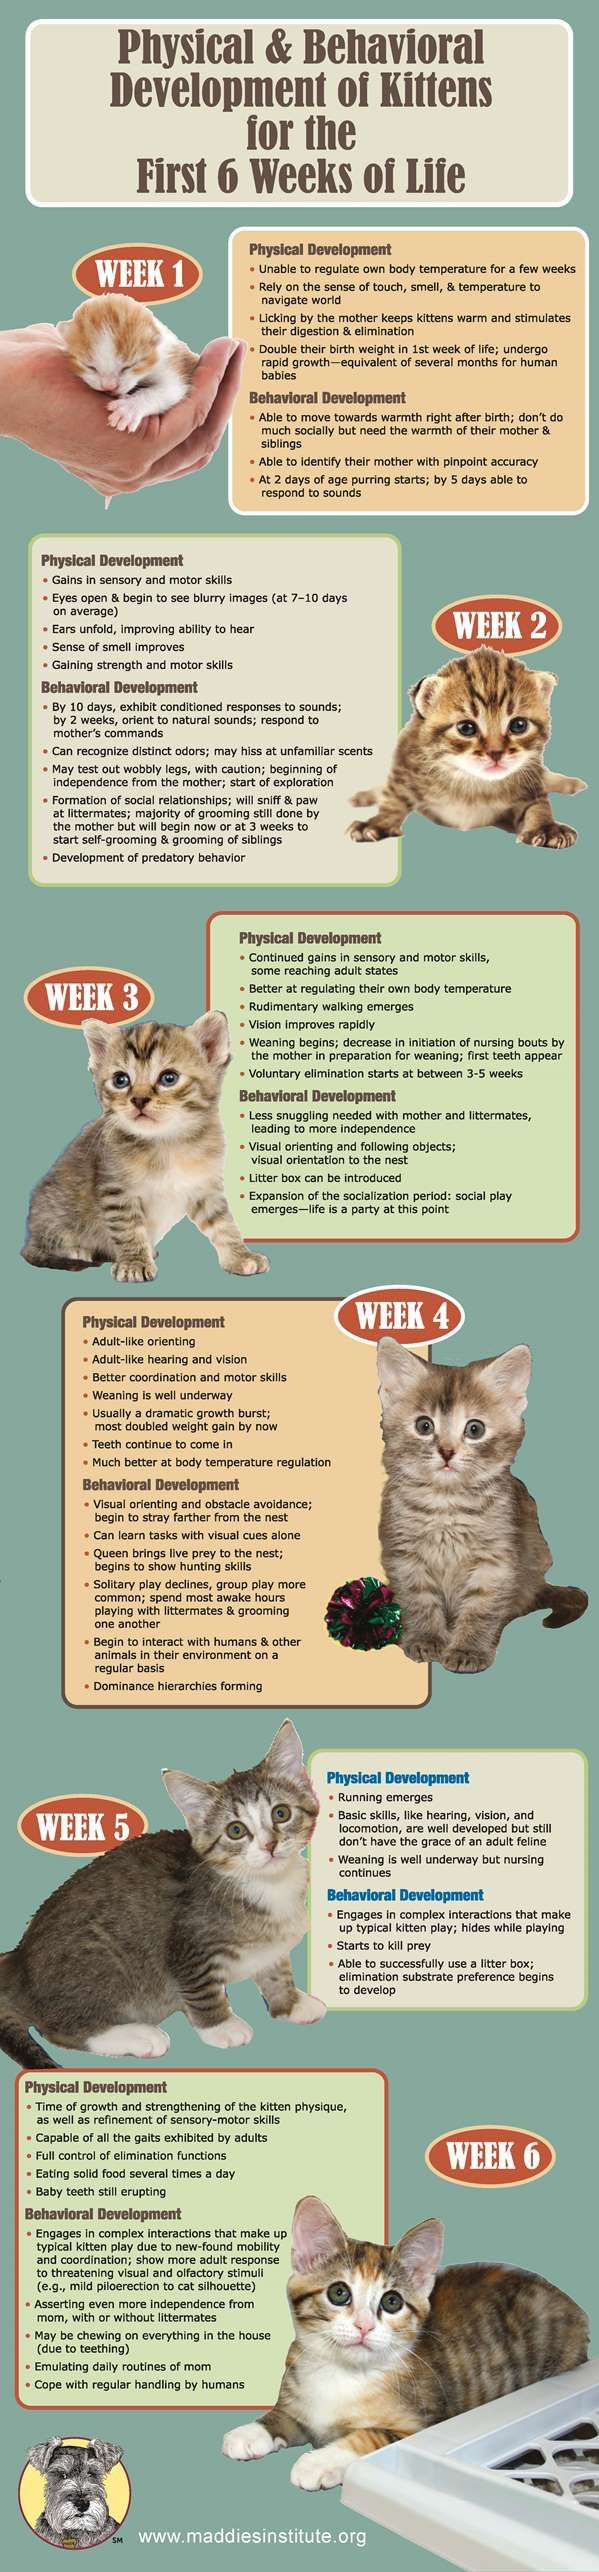 Physical and Behavioral Development of Kittens